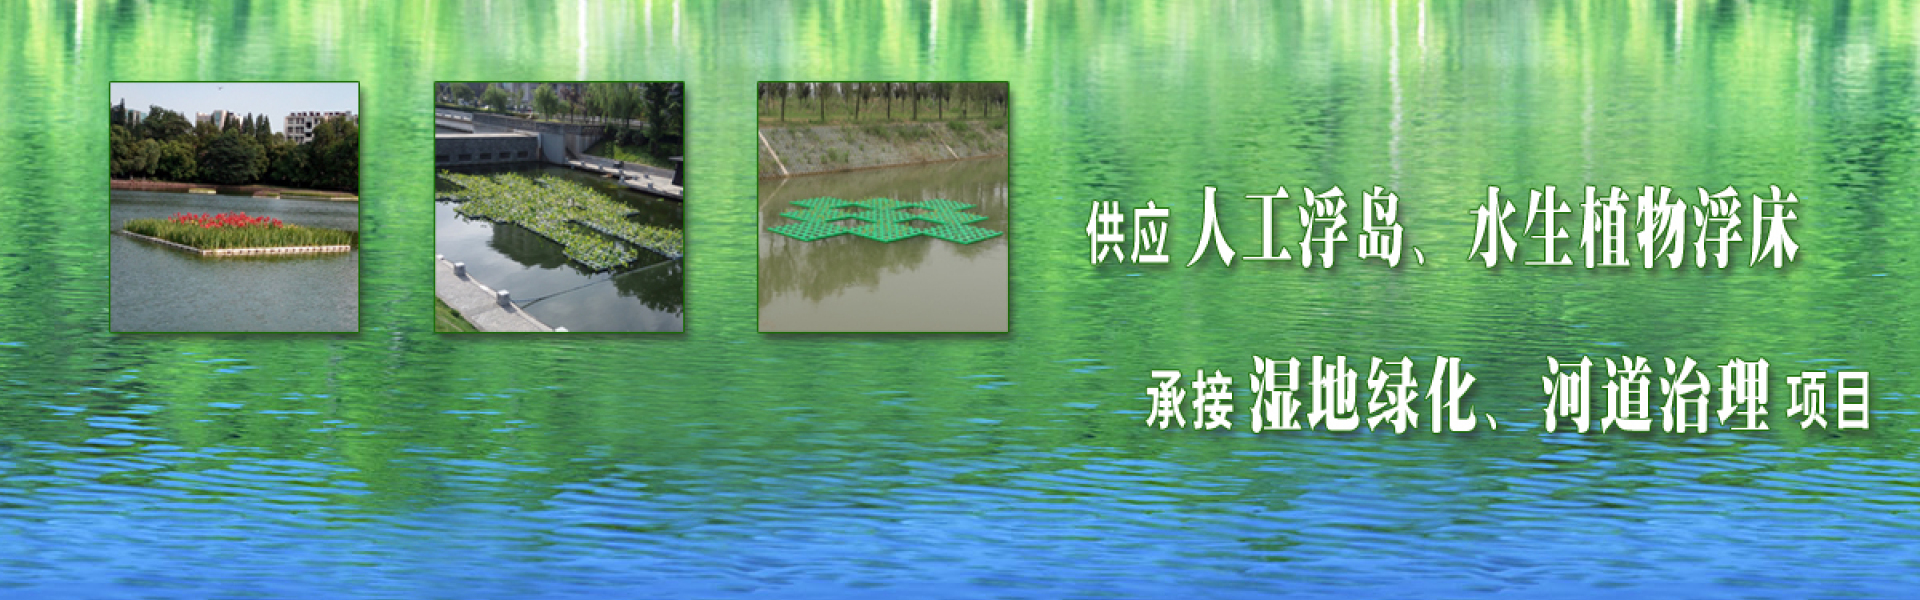 Supply artificial floating islands, floating beds of aquatic plants, undertake wetland greening, river treatment projects